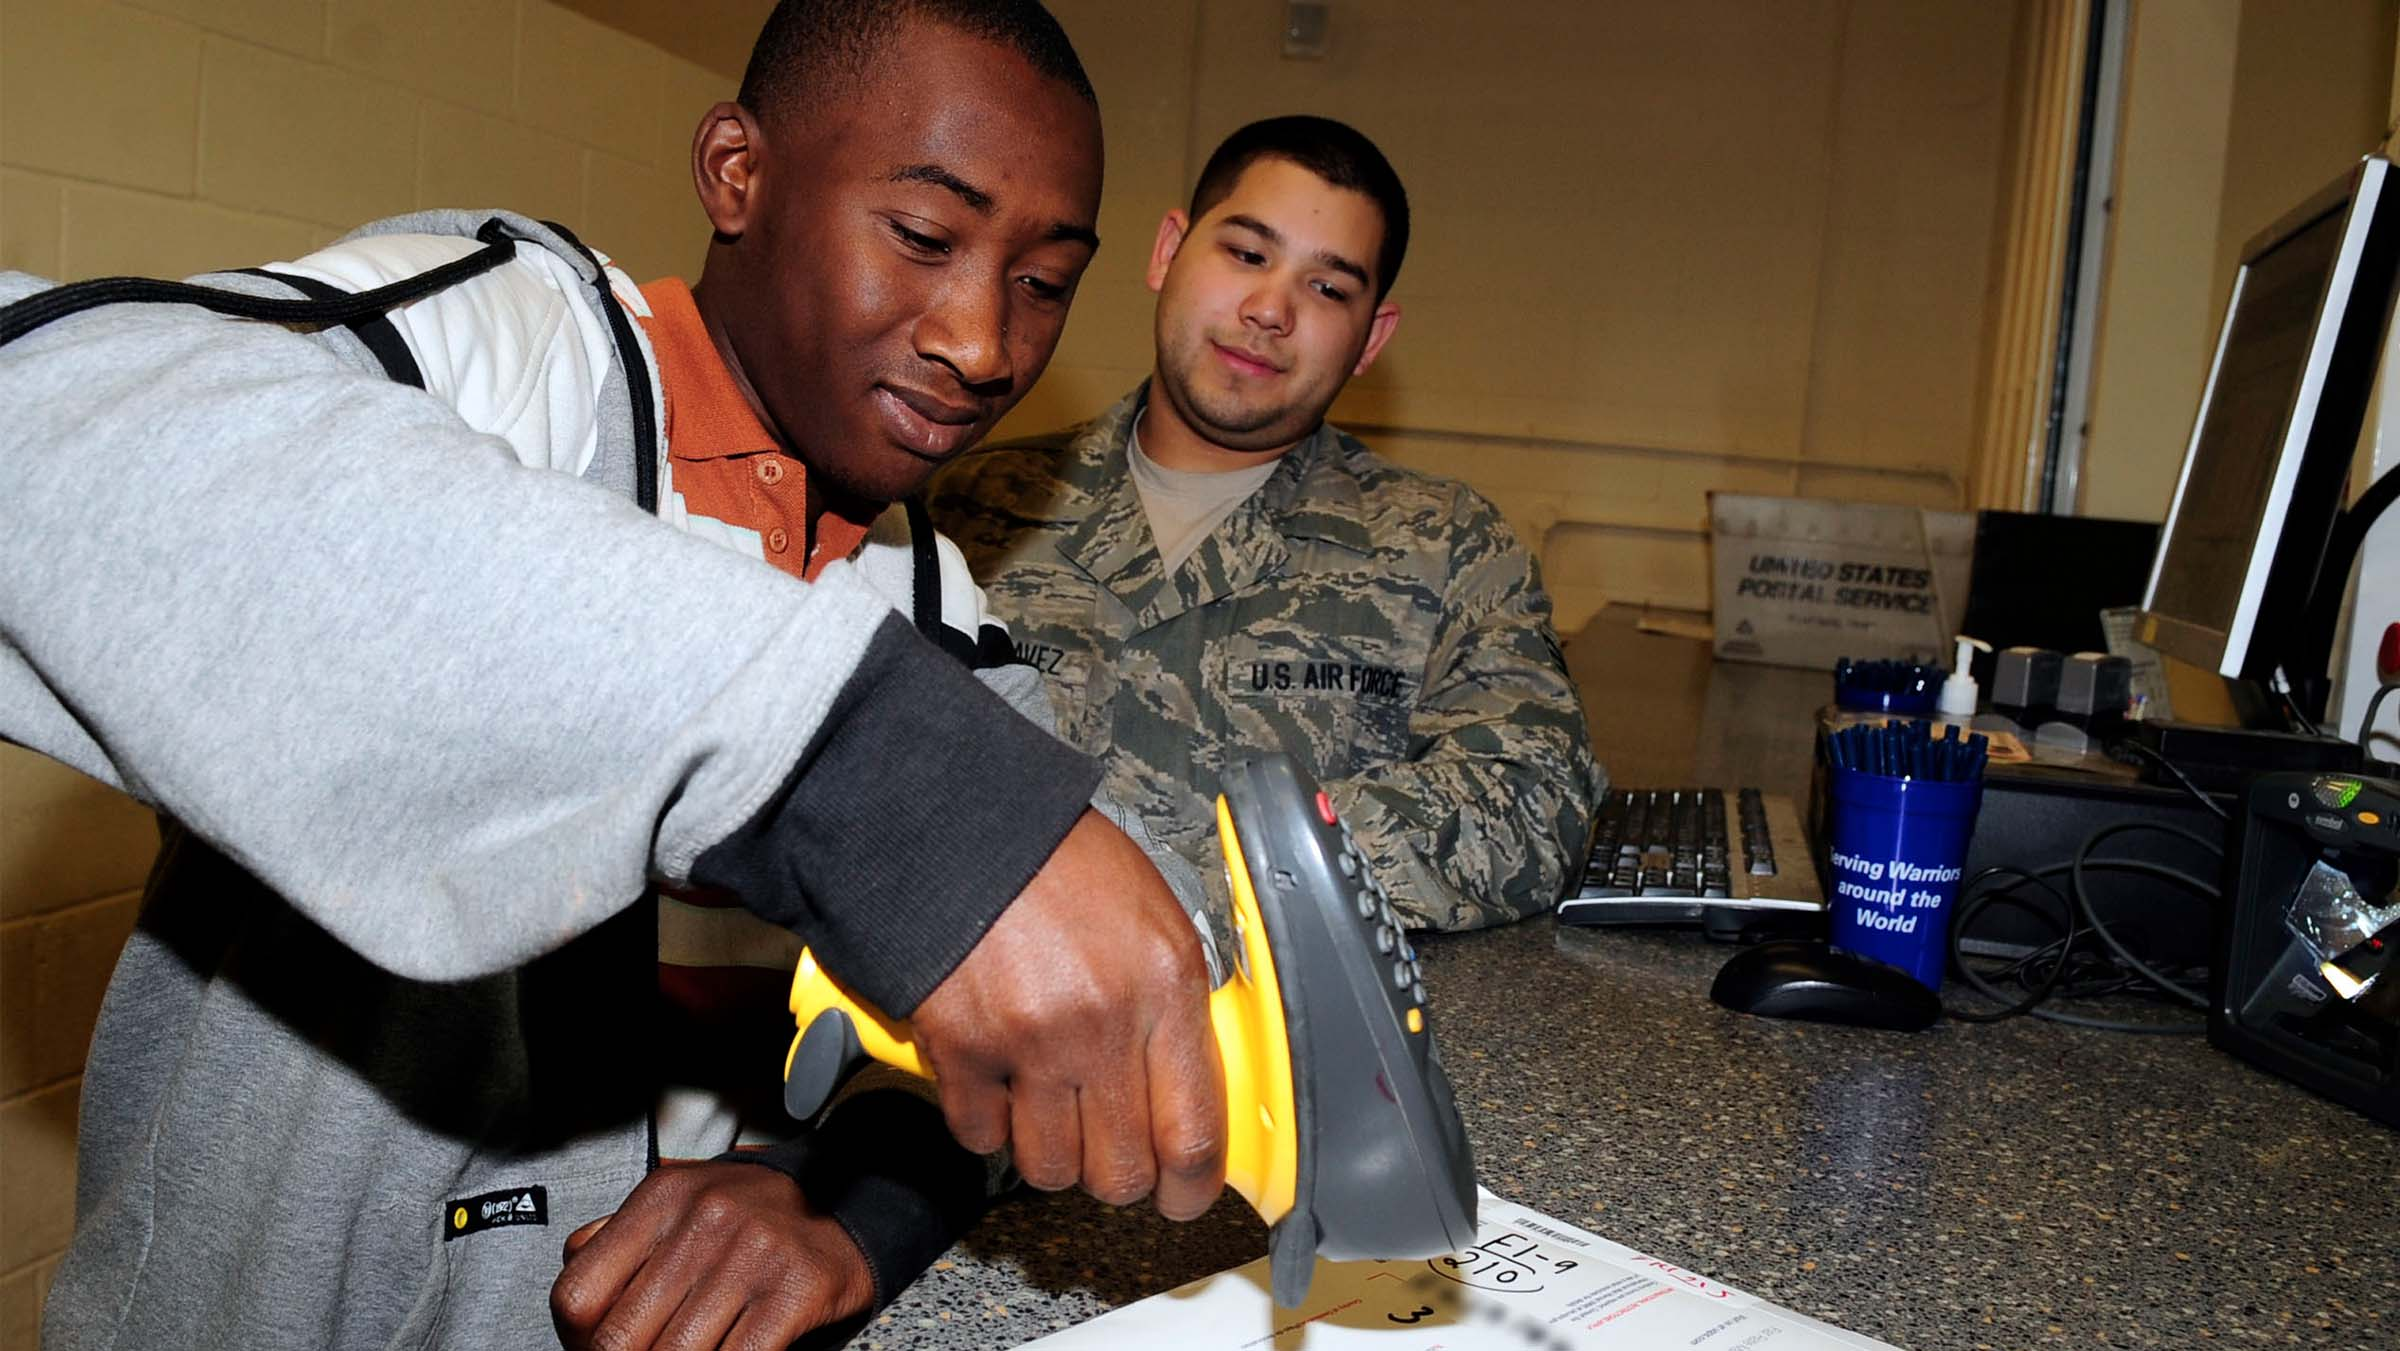 Student receives training at his summer job on a military installation